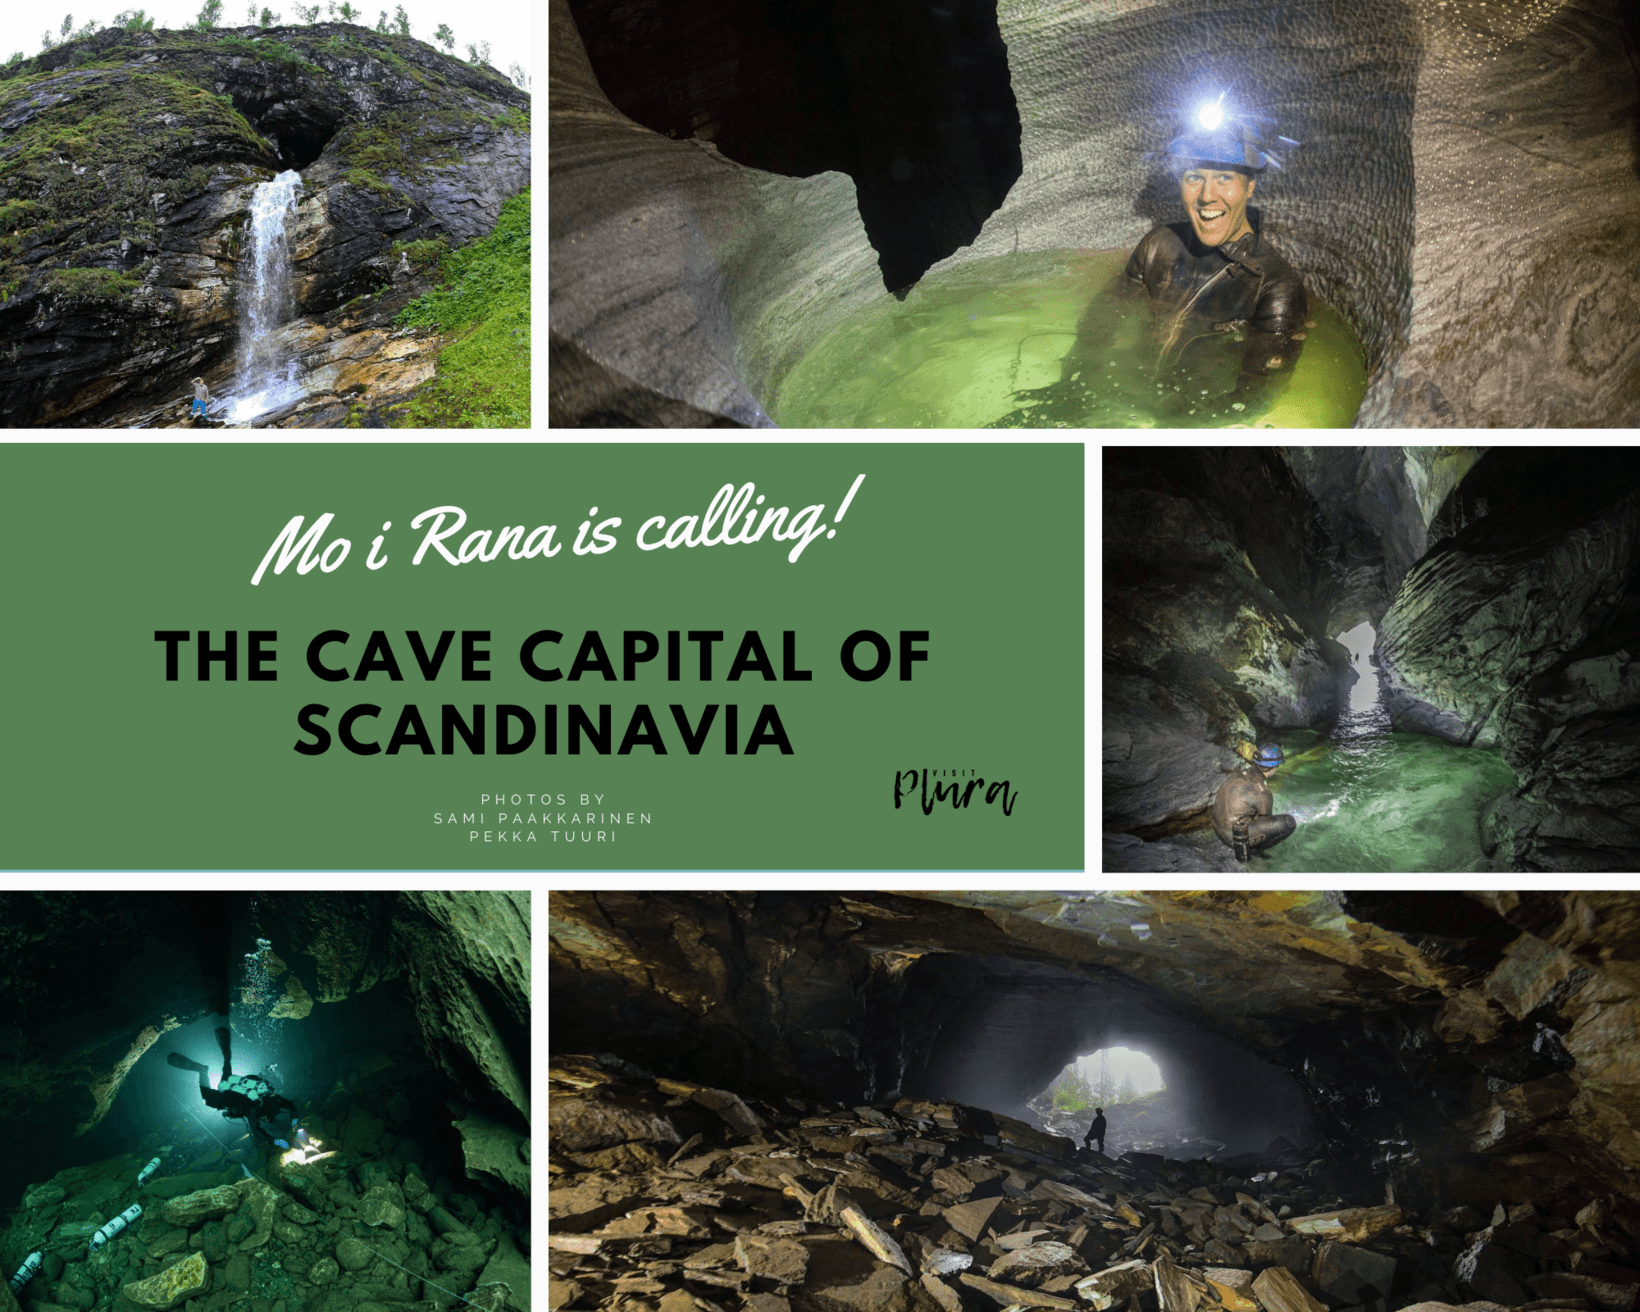 The Cave Capital of Scandinavia